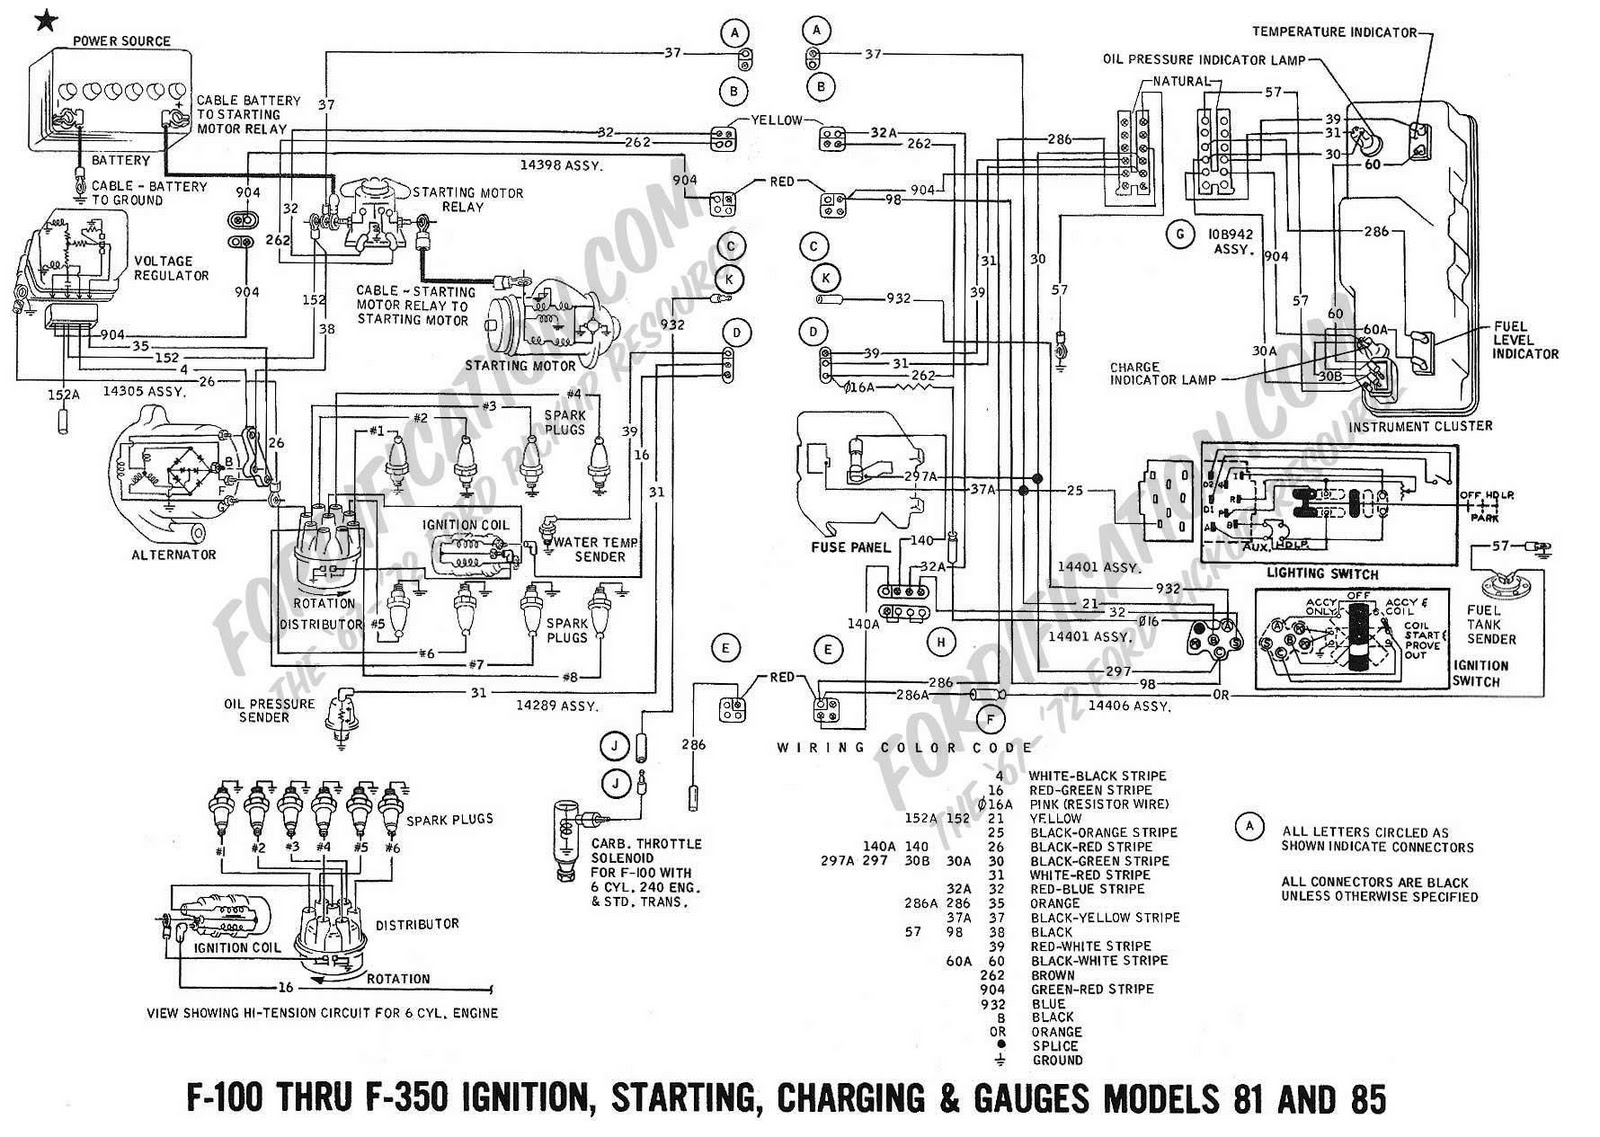 ford truck wiring harness wiring diagram portal 2006 ford truck wiring diagram 50 ford wiring harness [ 1600 x 1137 Pixel ]